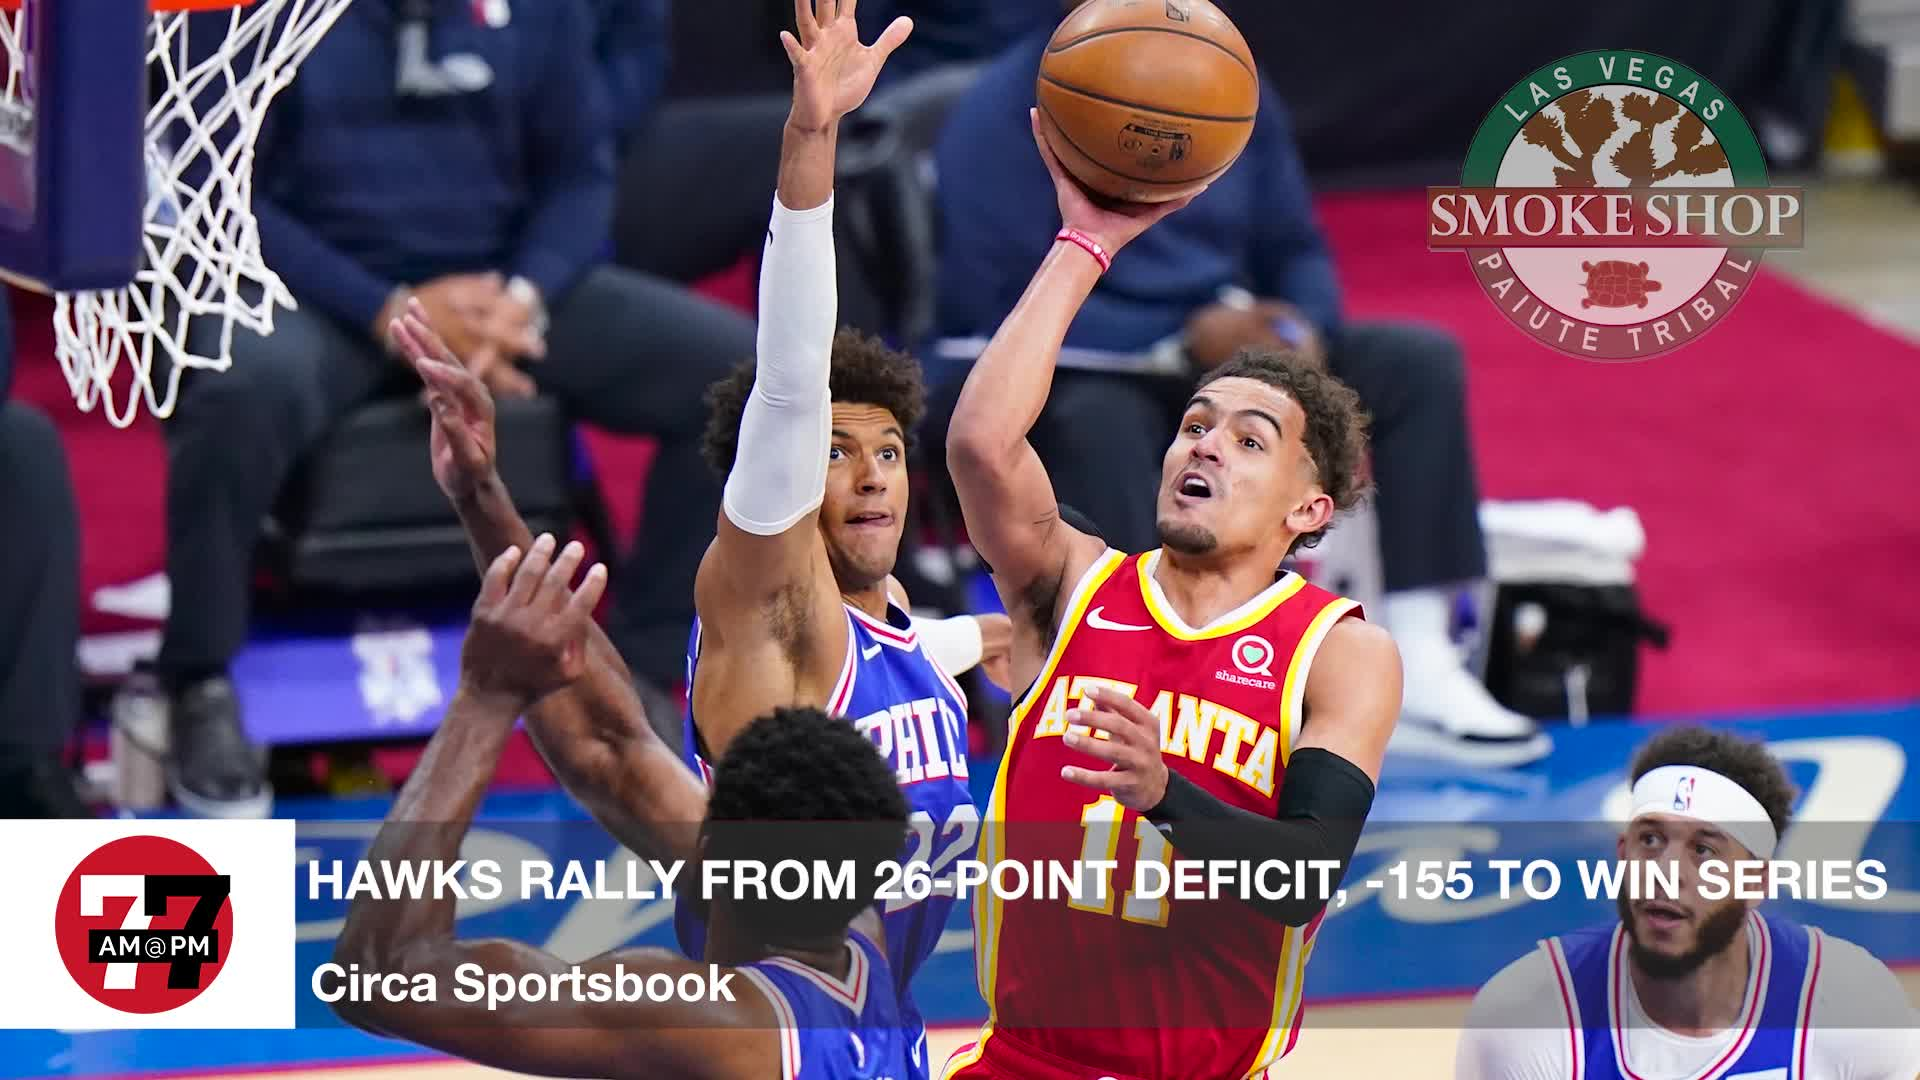 7@7PM Hawks -155 Over 76ers